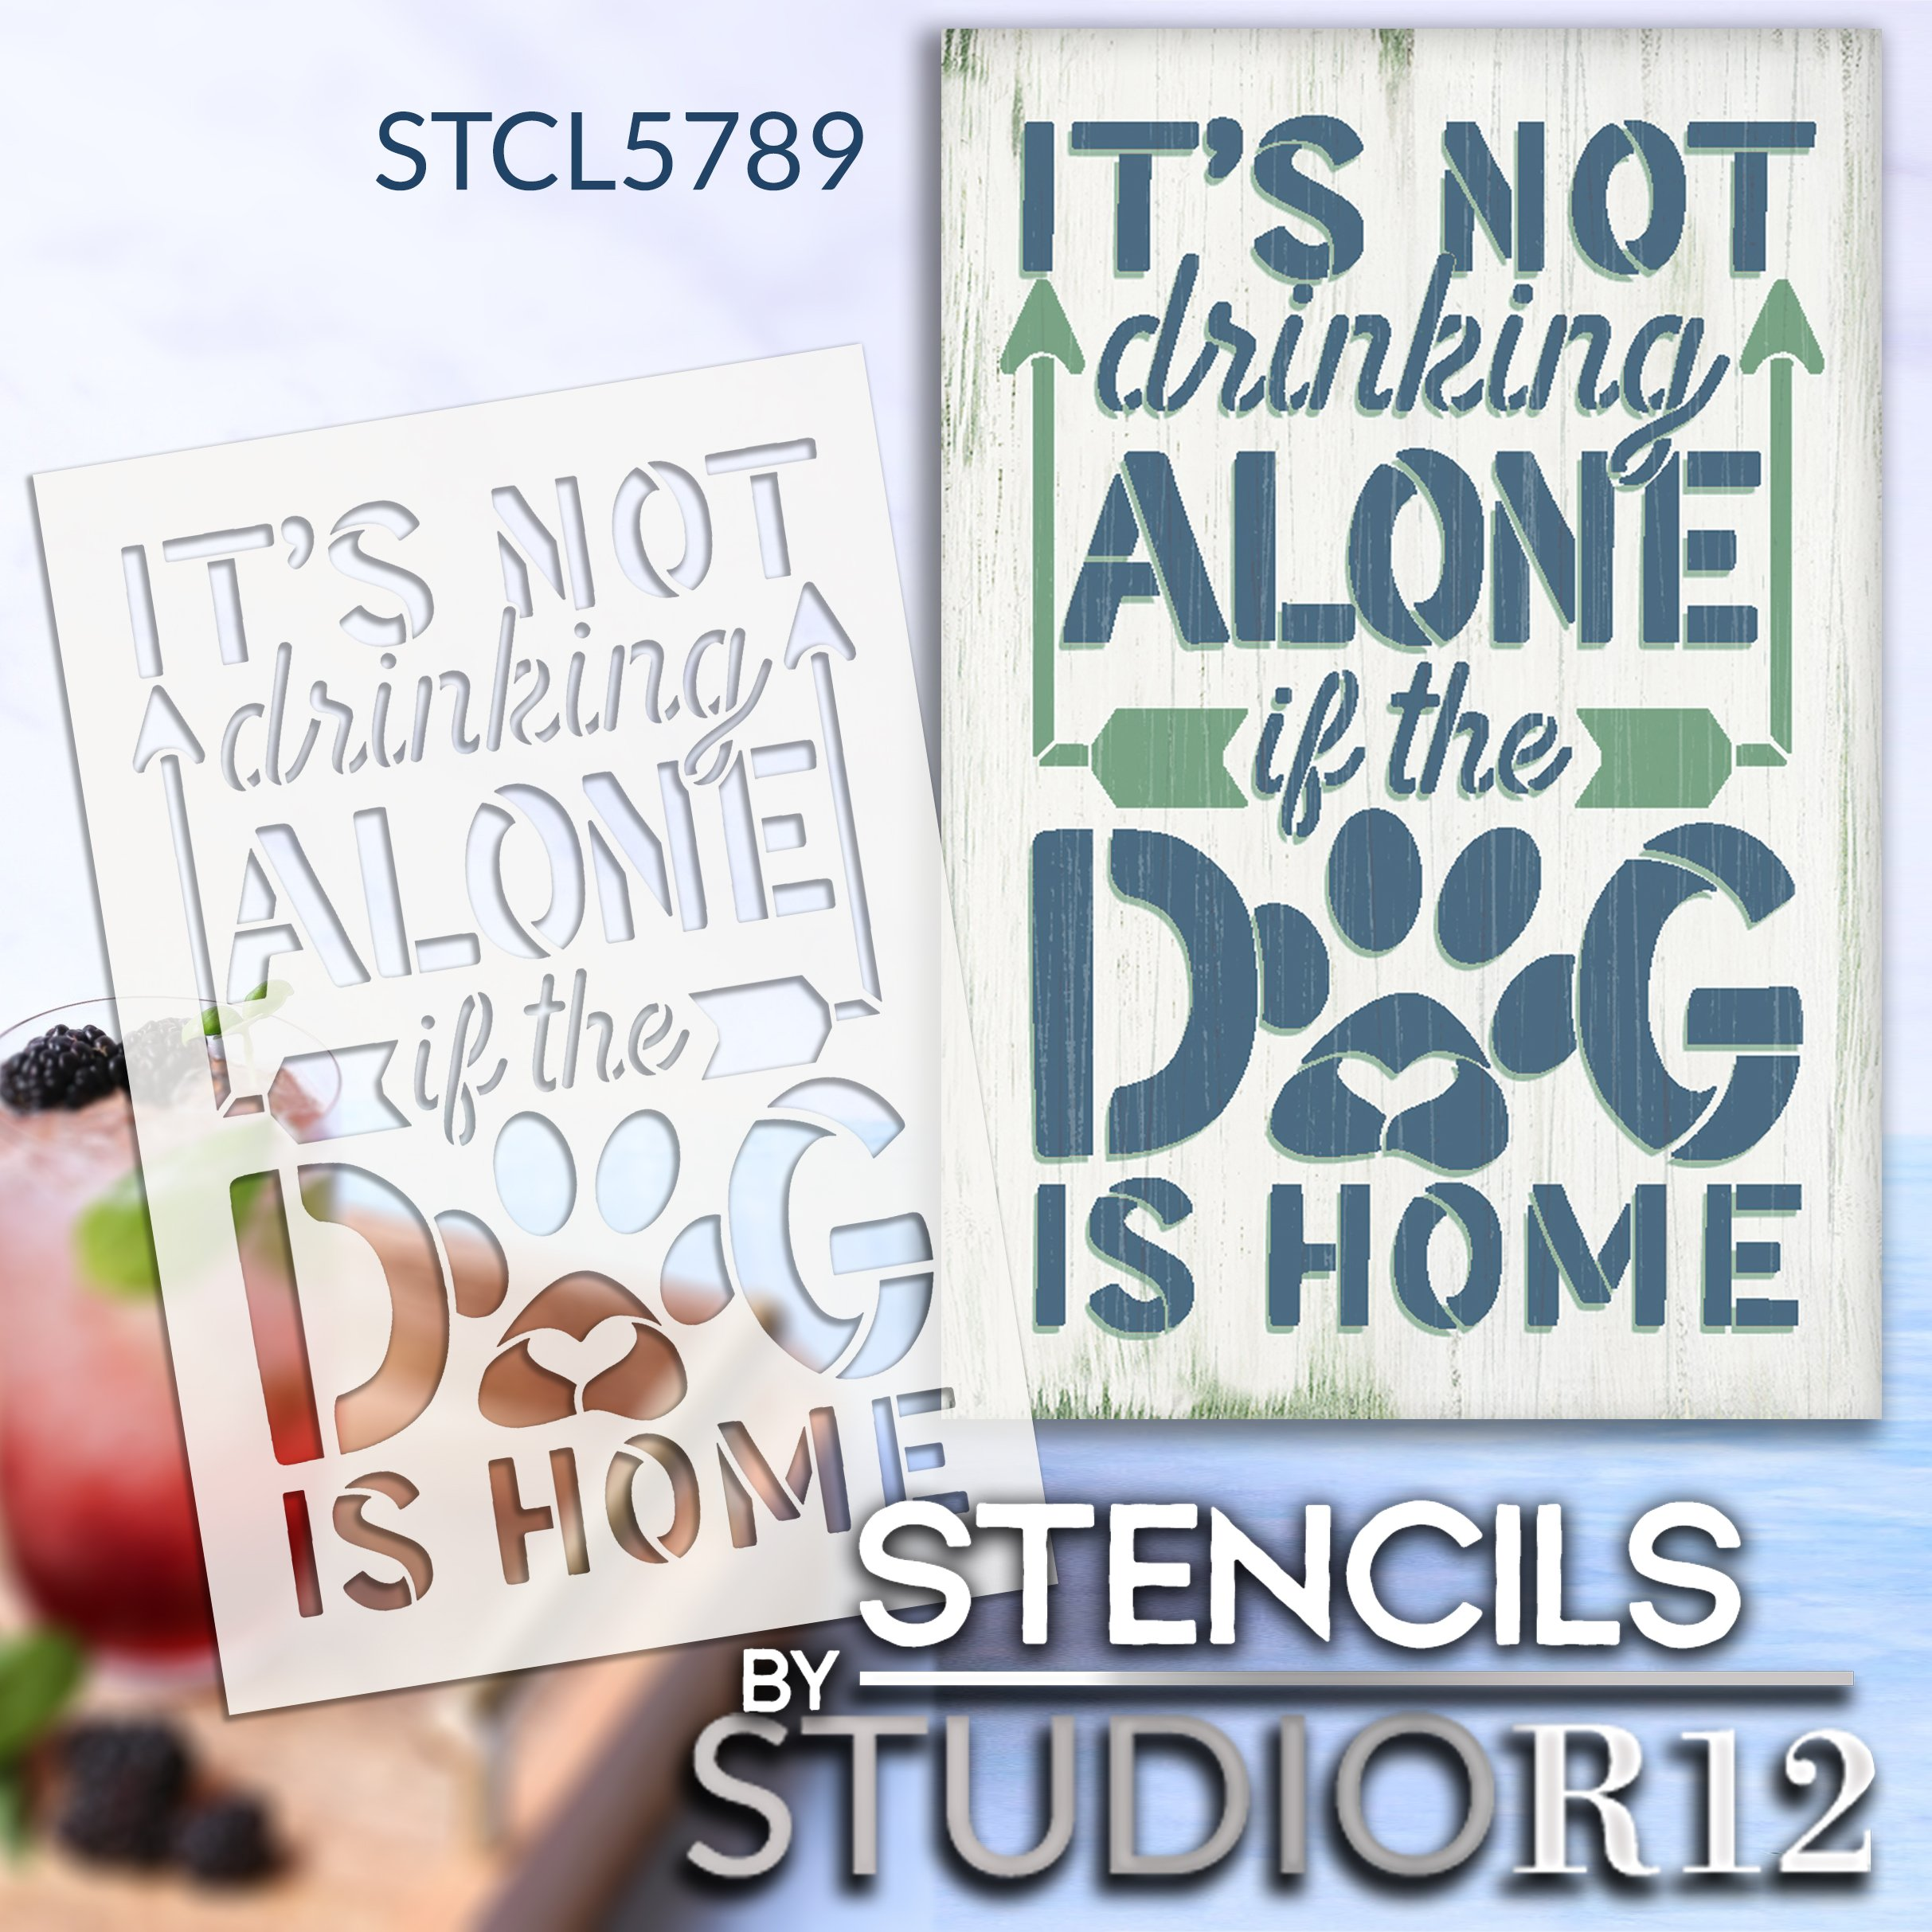 Not Drinking Alone if The Dog is Home Stencil by StudioR12   Craft DIY Pet & Wine Home Decor   Paint Wood Sign   Reusable Mylar Template   Select Size